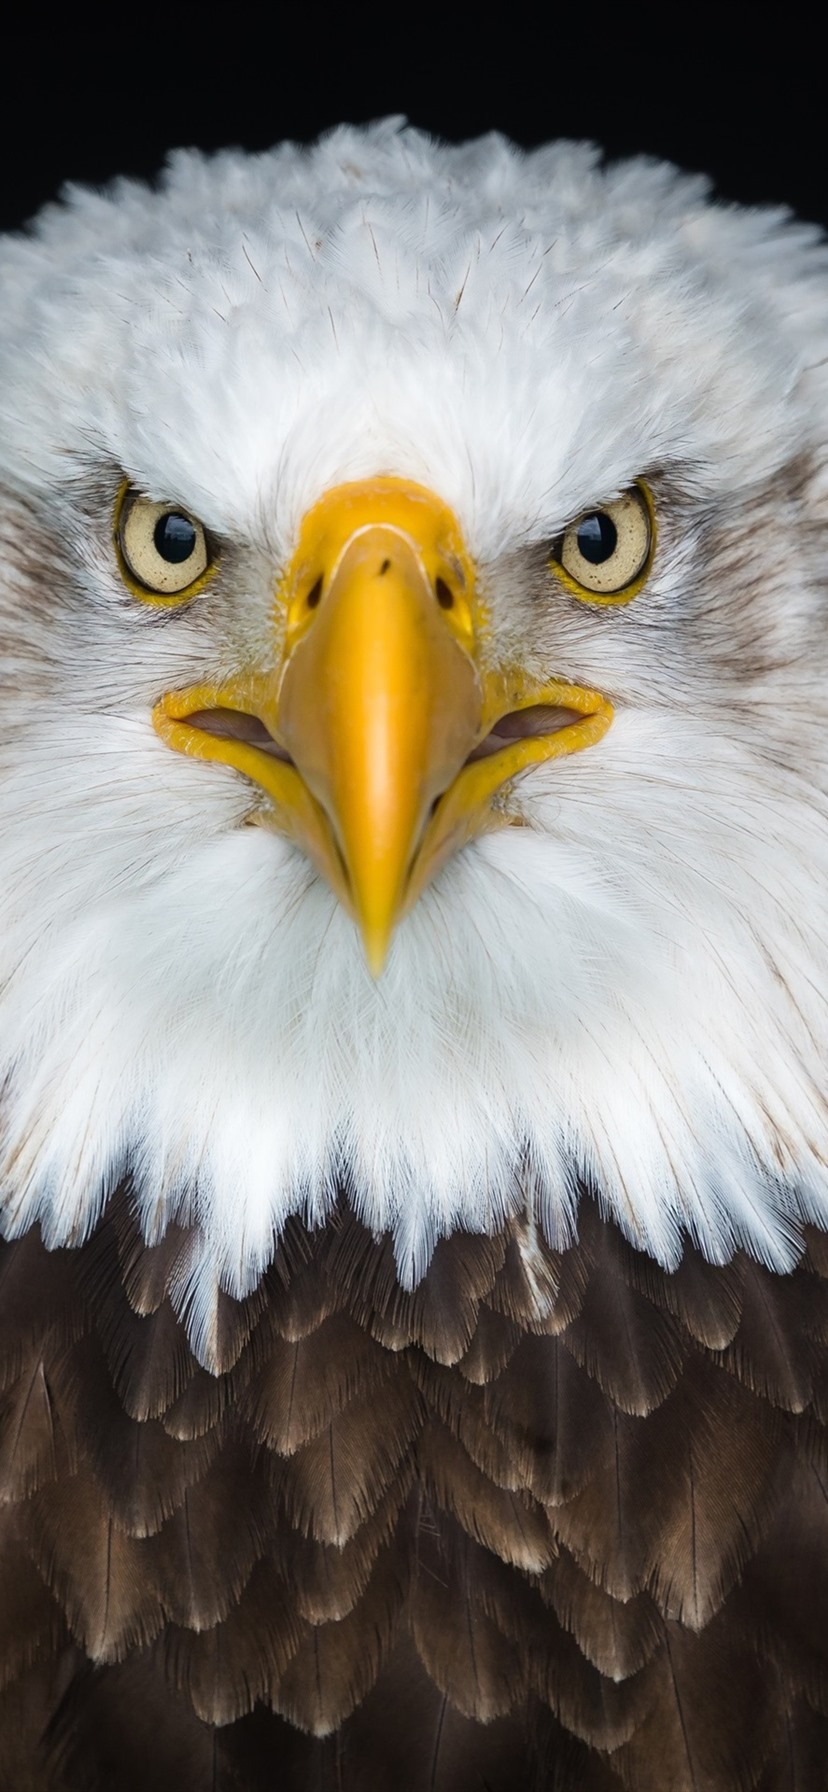 Summer Wallpapers For Iphone 7 Wallpaper Bald Eagle Front View Beak Eyes 3840x2160 Uhd